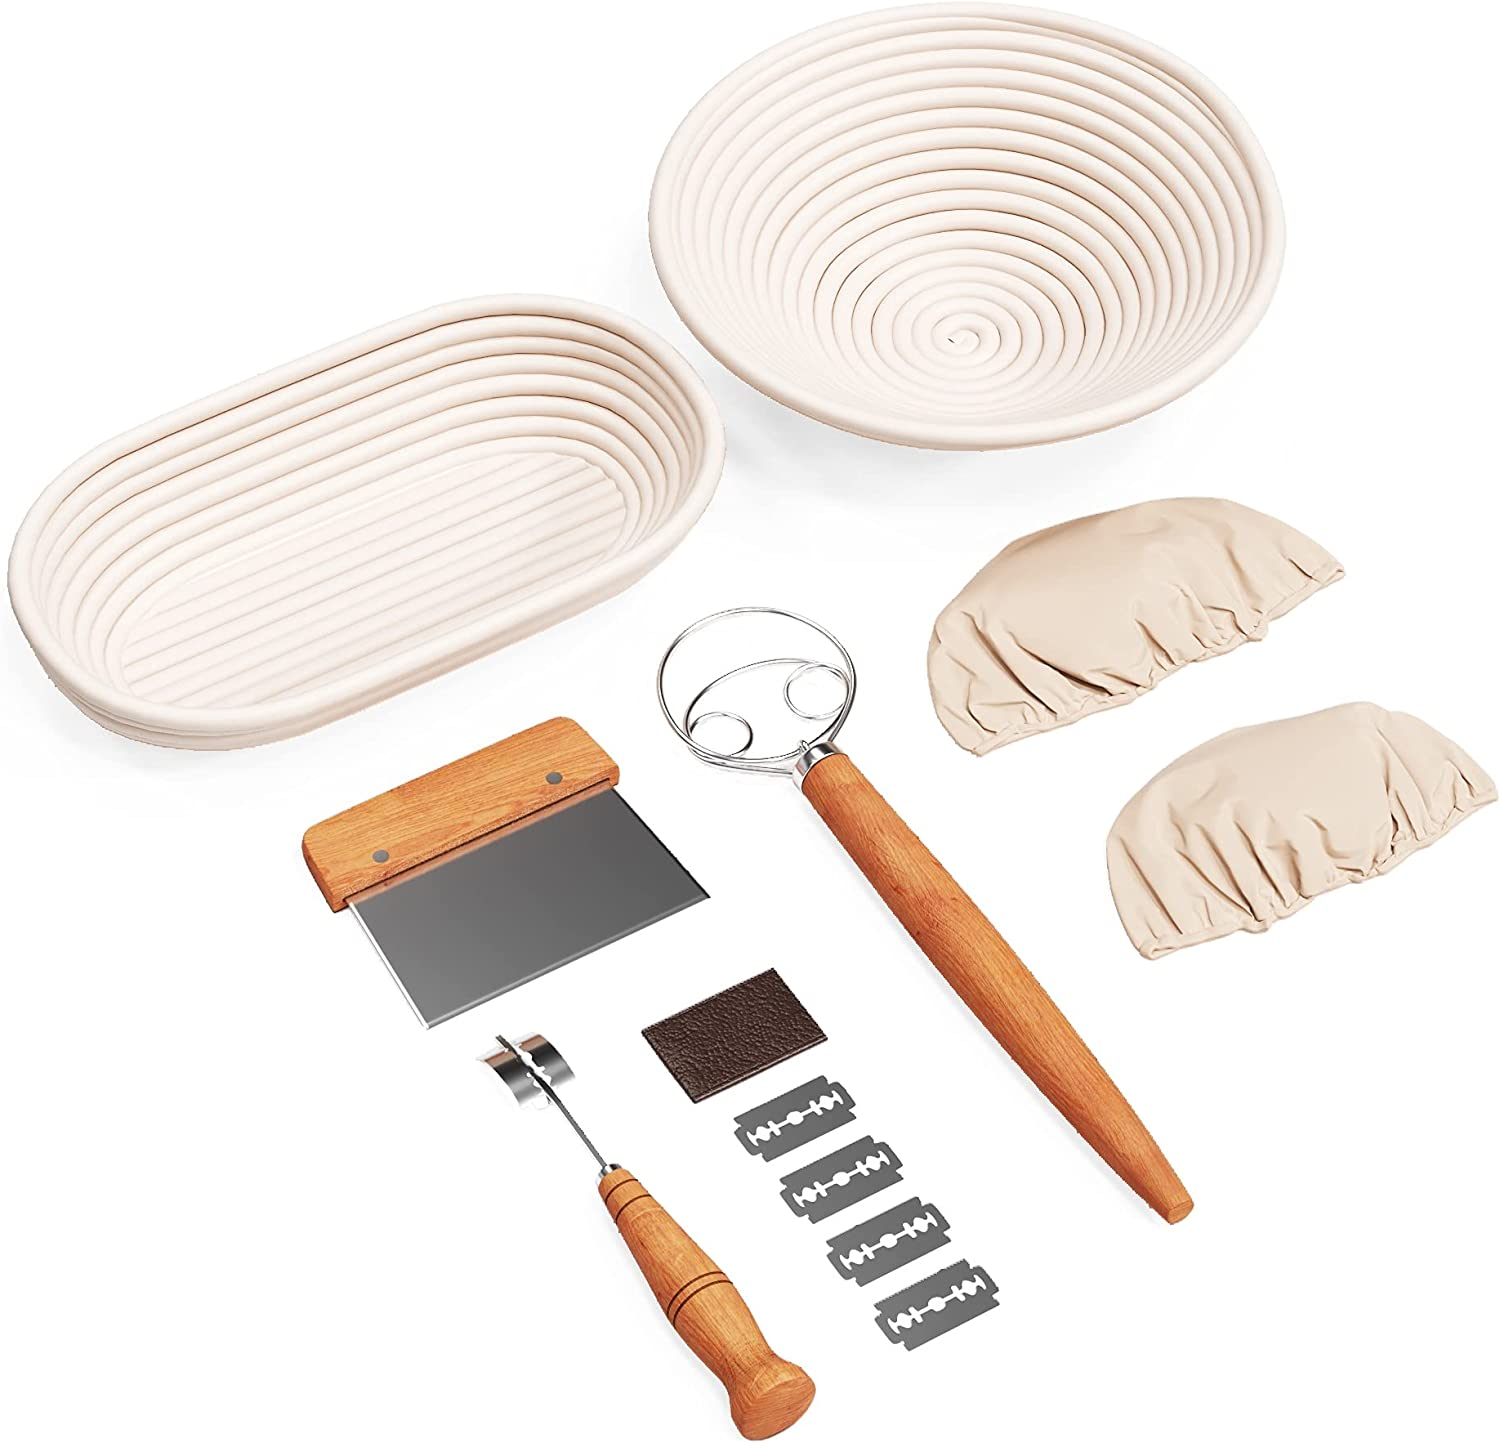 Bread Proofing Basket bundled with Lame Dough Free Shipping Cheap Bargain Gift Max 41% OFF Scraper and